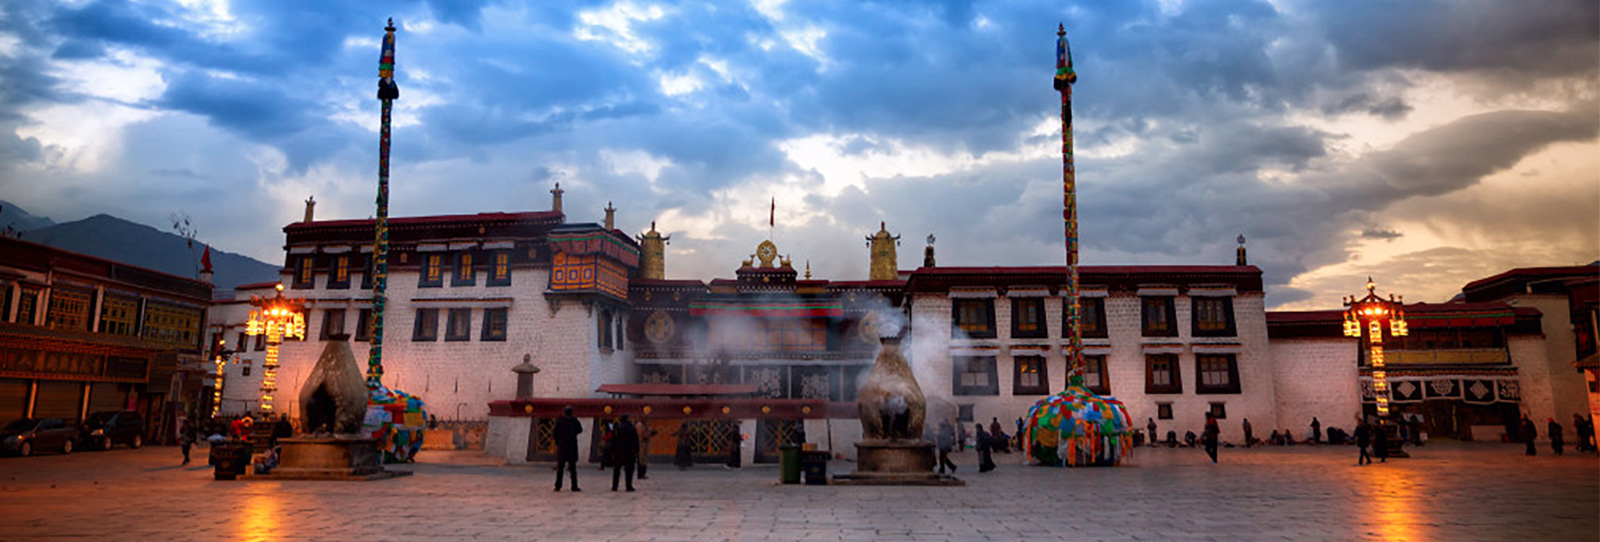 Lhasa City Tibet Tour (4 Days)